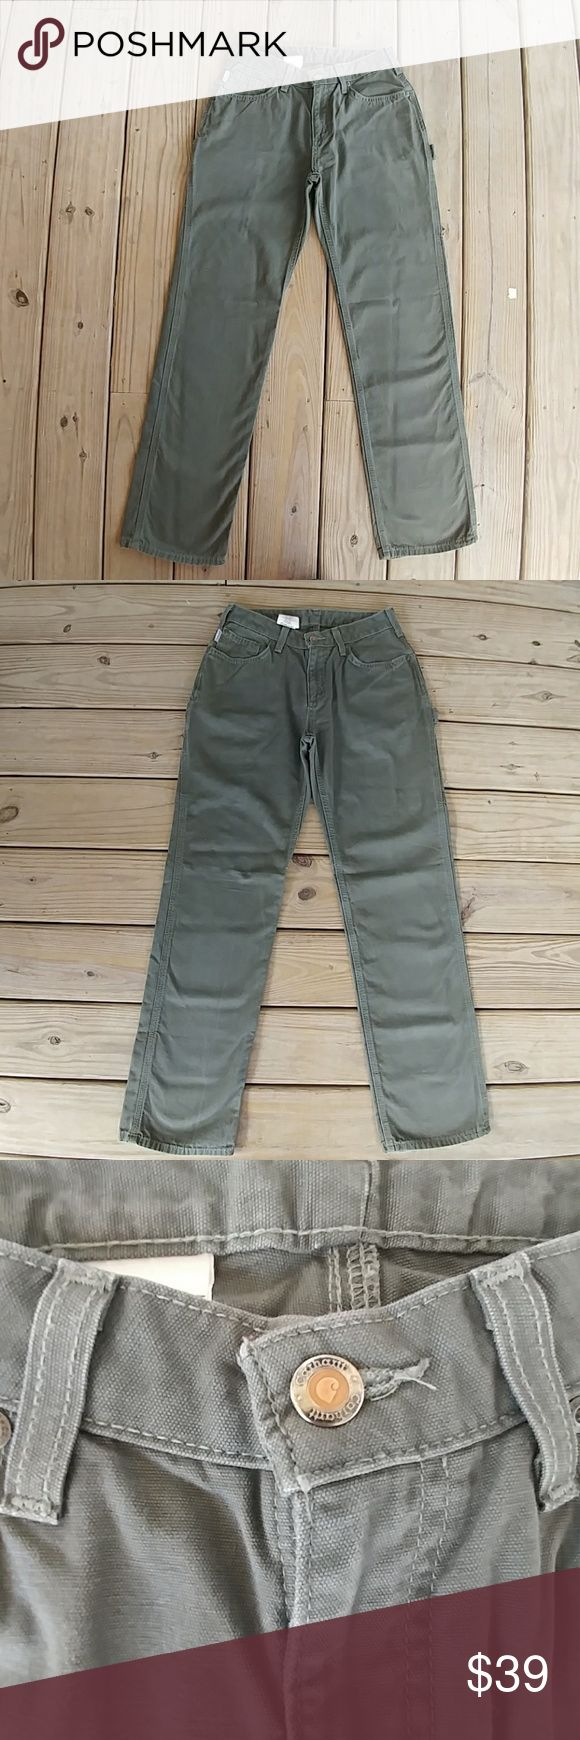 EUC Carhartt Cargo Pants EUC Carhartt Olive/ Grayish Work Pants. These are Sturdy, but Cool Looking Cargo Pants. They are High Waisted and it is about 27in with a 10in Rise. Inseam is 31in.They Have a Back Pocket on the Thigh and a Place For Your 🔨! They Would be Great as a Boyfriend Look. The First Picture is to Show How They Look. I Believe if This is Not The Exact Pair, They Are Very Close. Carhartt Pants Straight Leg